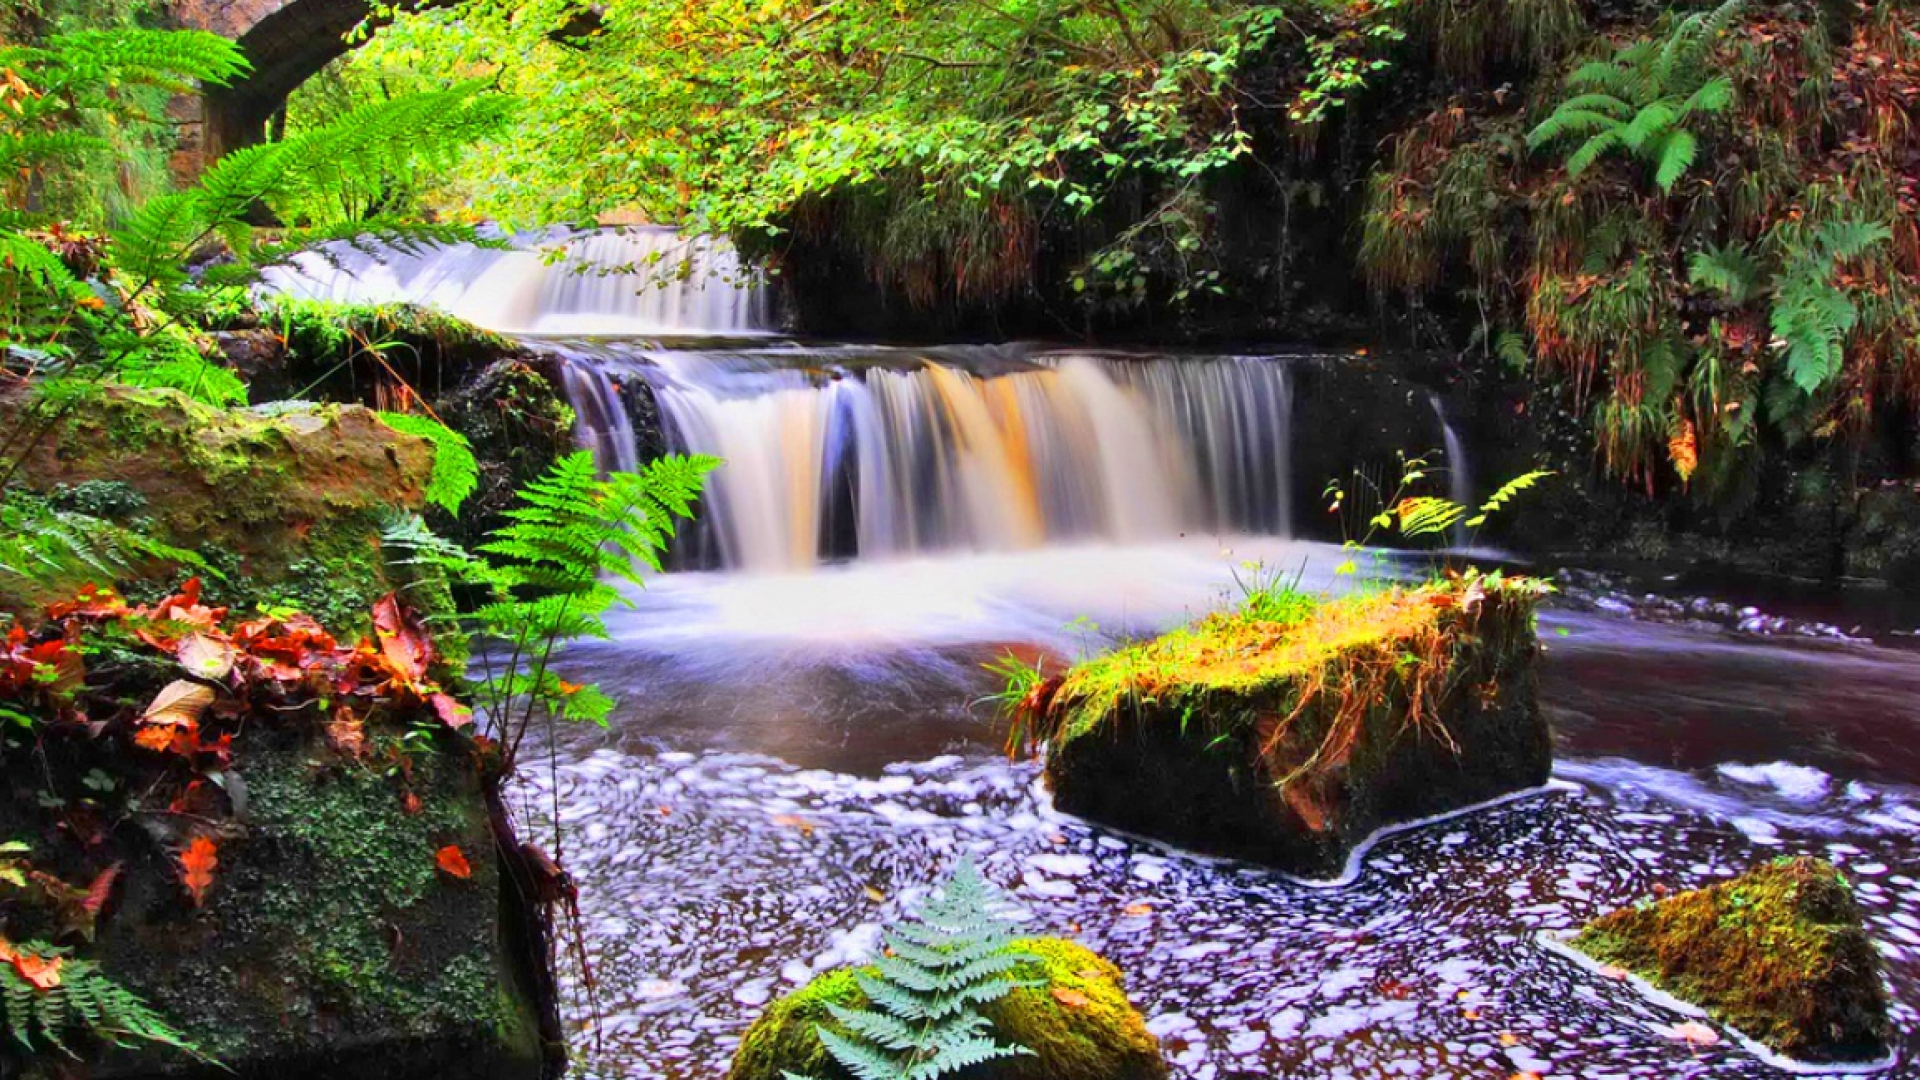 Colorful Waterfall Hd Wallpaper Background Image